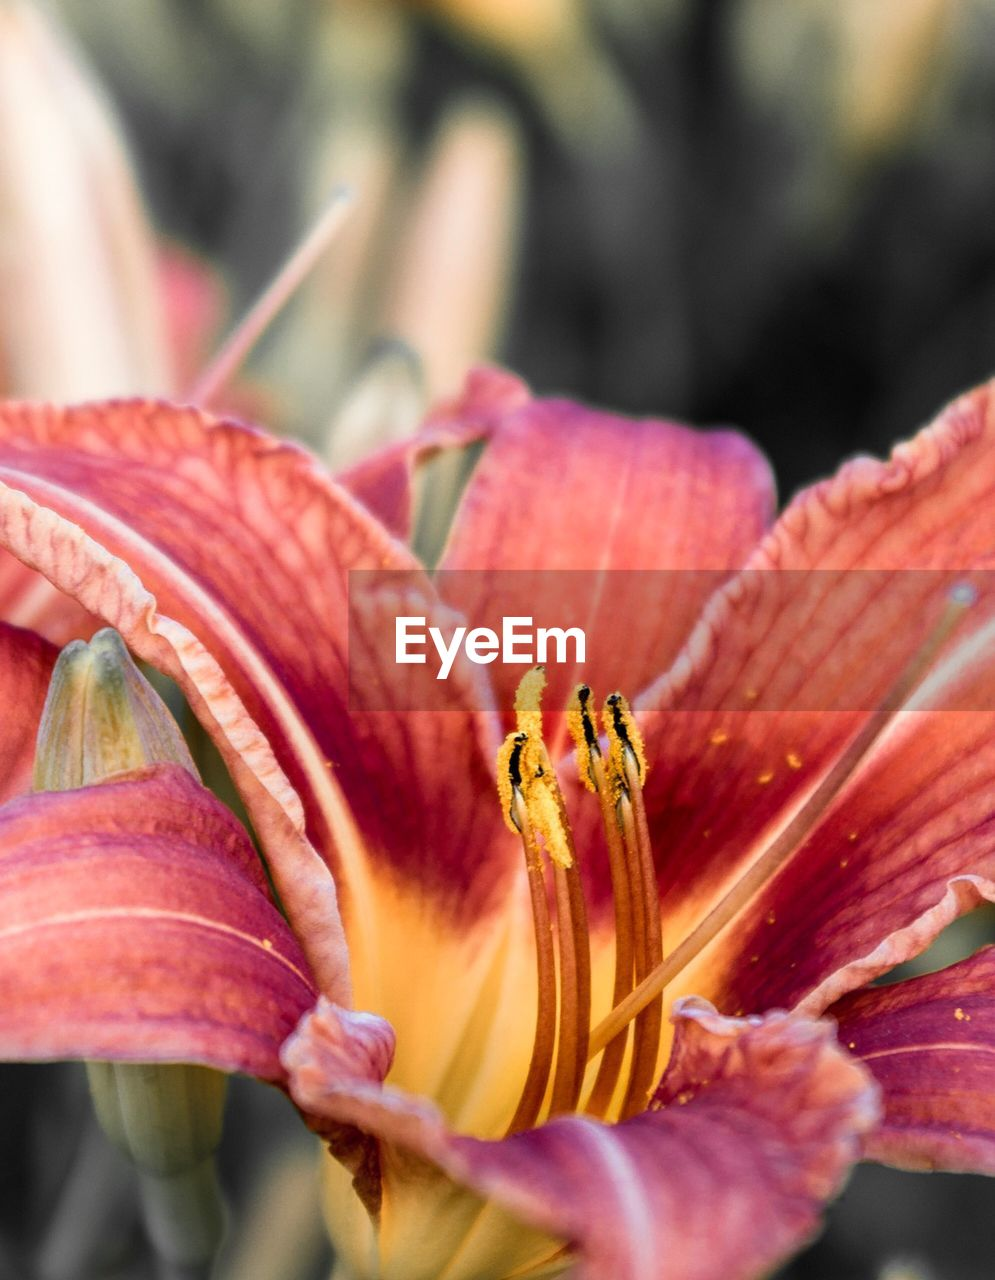 flower, flowering plant, vulnerability, petal, plant, fragility, beauty in nature, freshness, close-up, flower head, inflorescence, growth, pollen, lily, botany, stamen, day, selective focus, day lily, no people, outdoors, springtime